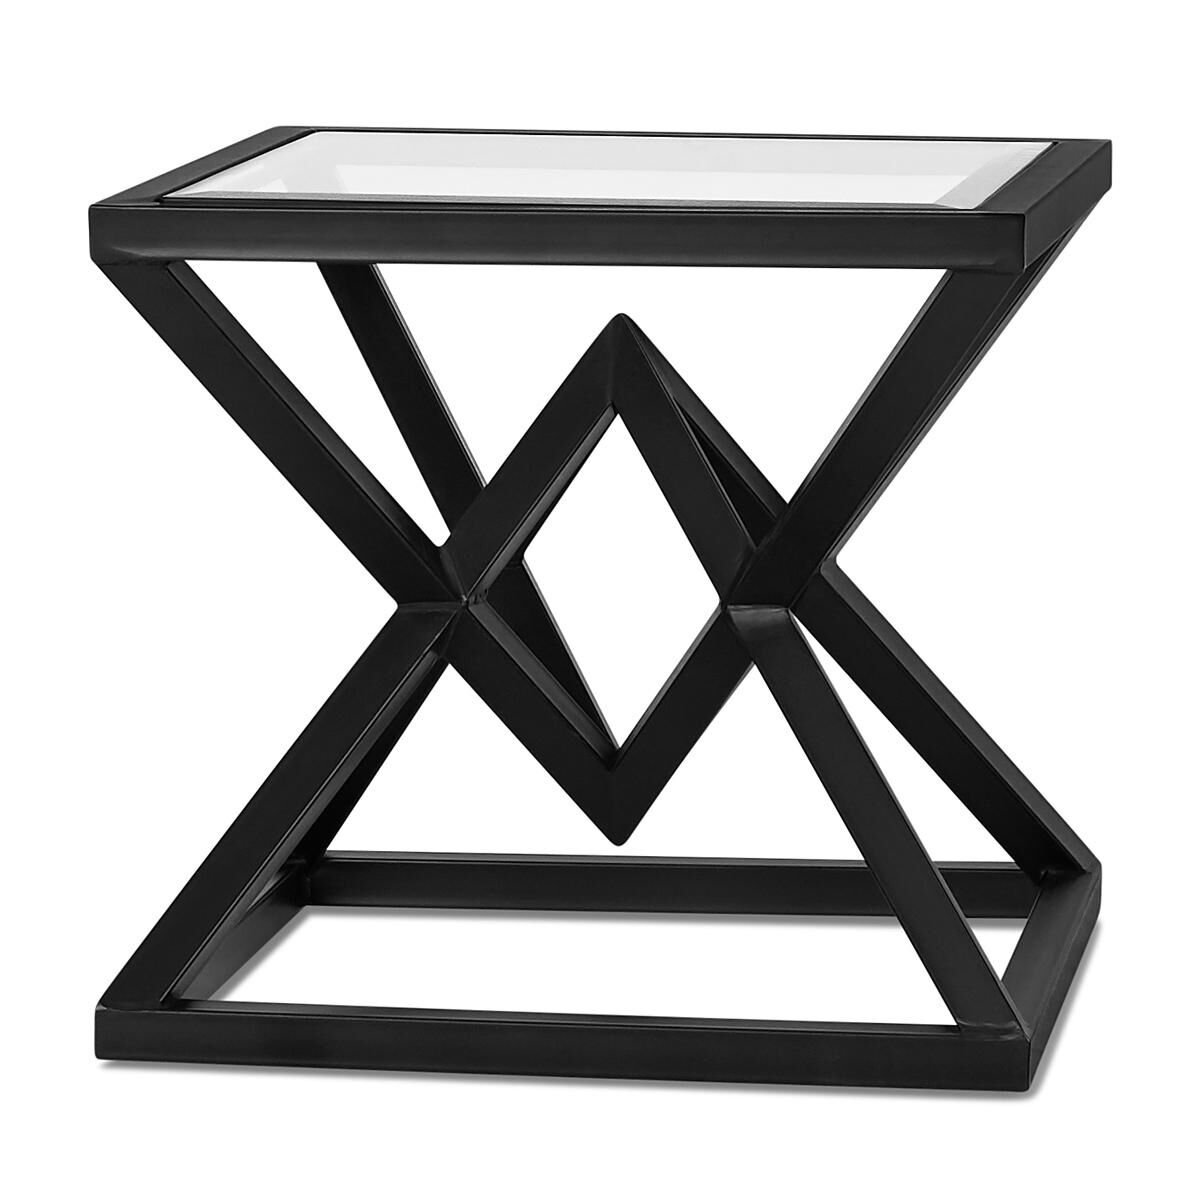 mirrored pyramid living room accent side end table cream furniture ideas glass images